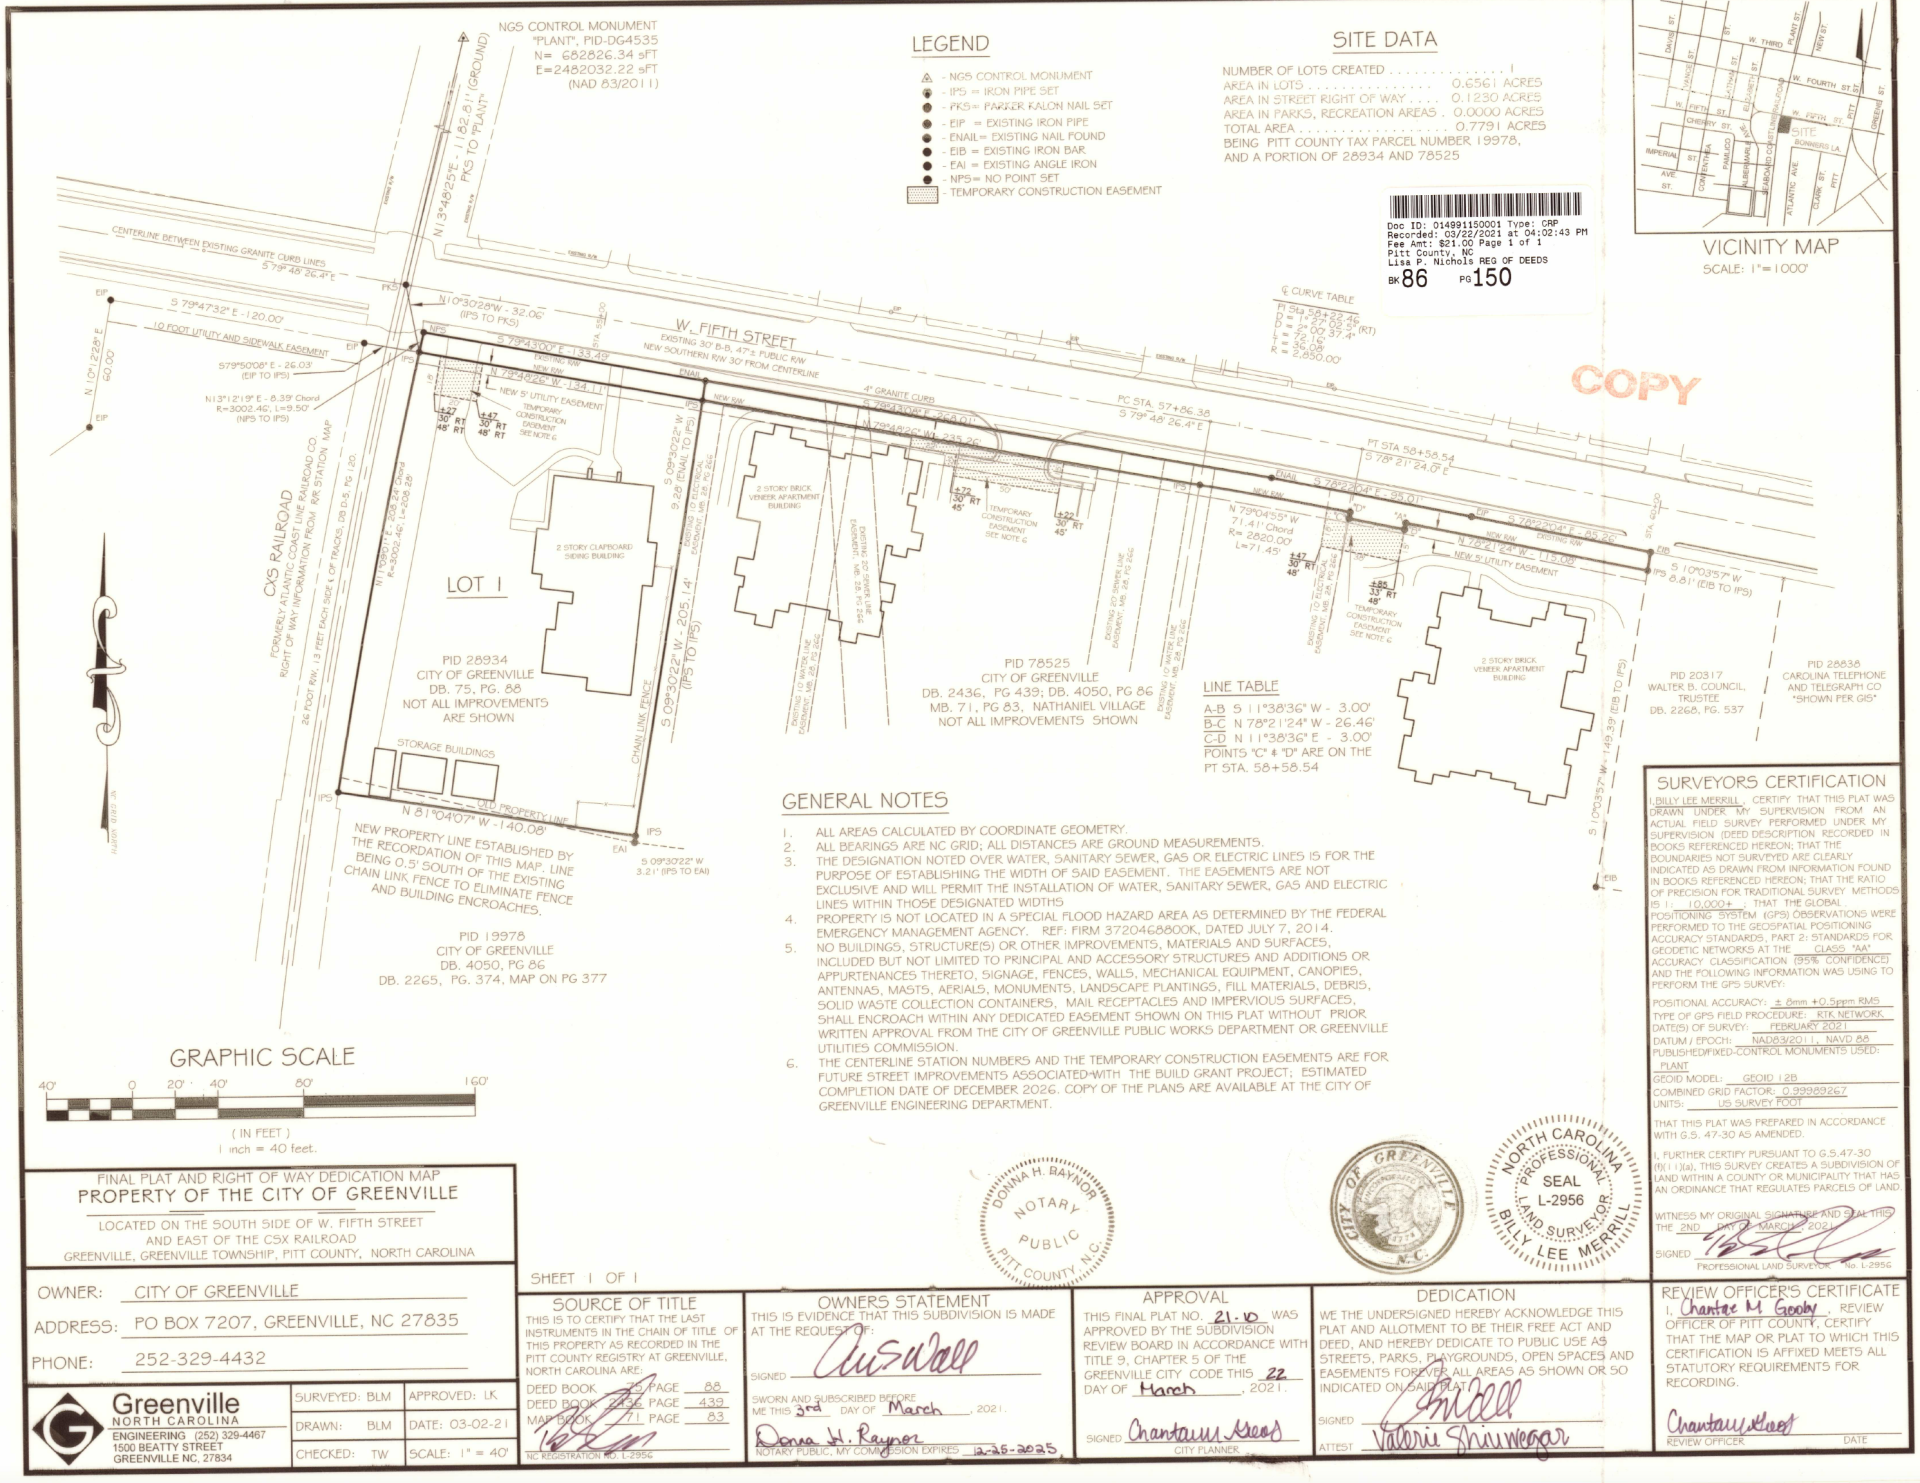 431 West Fifth Map of property